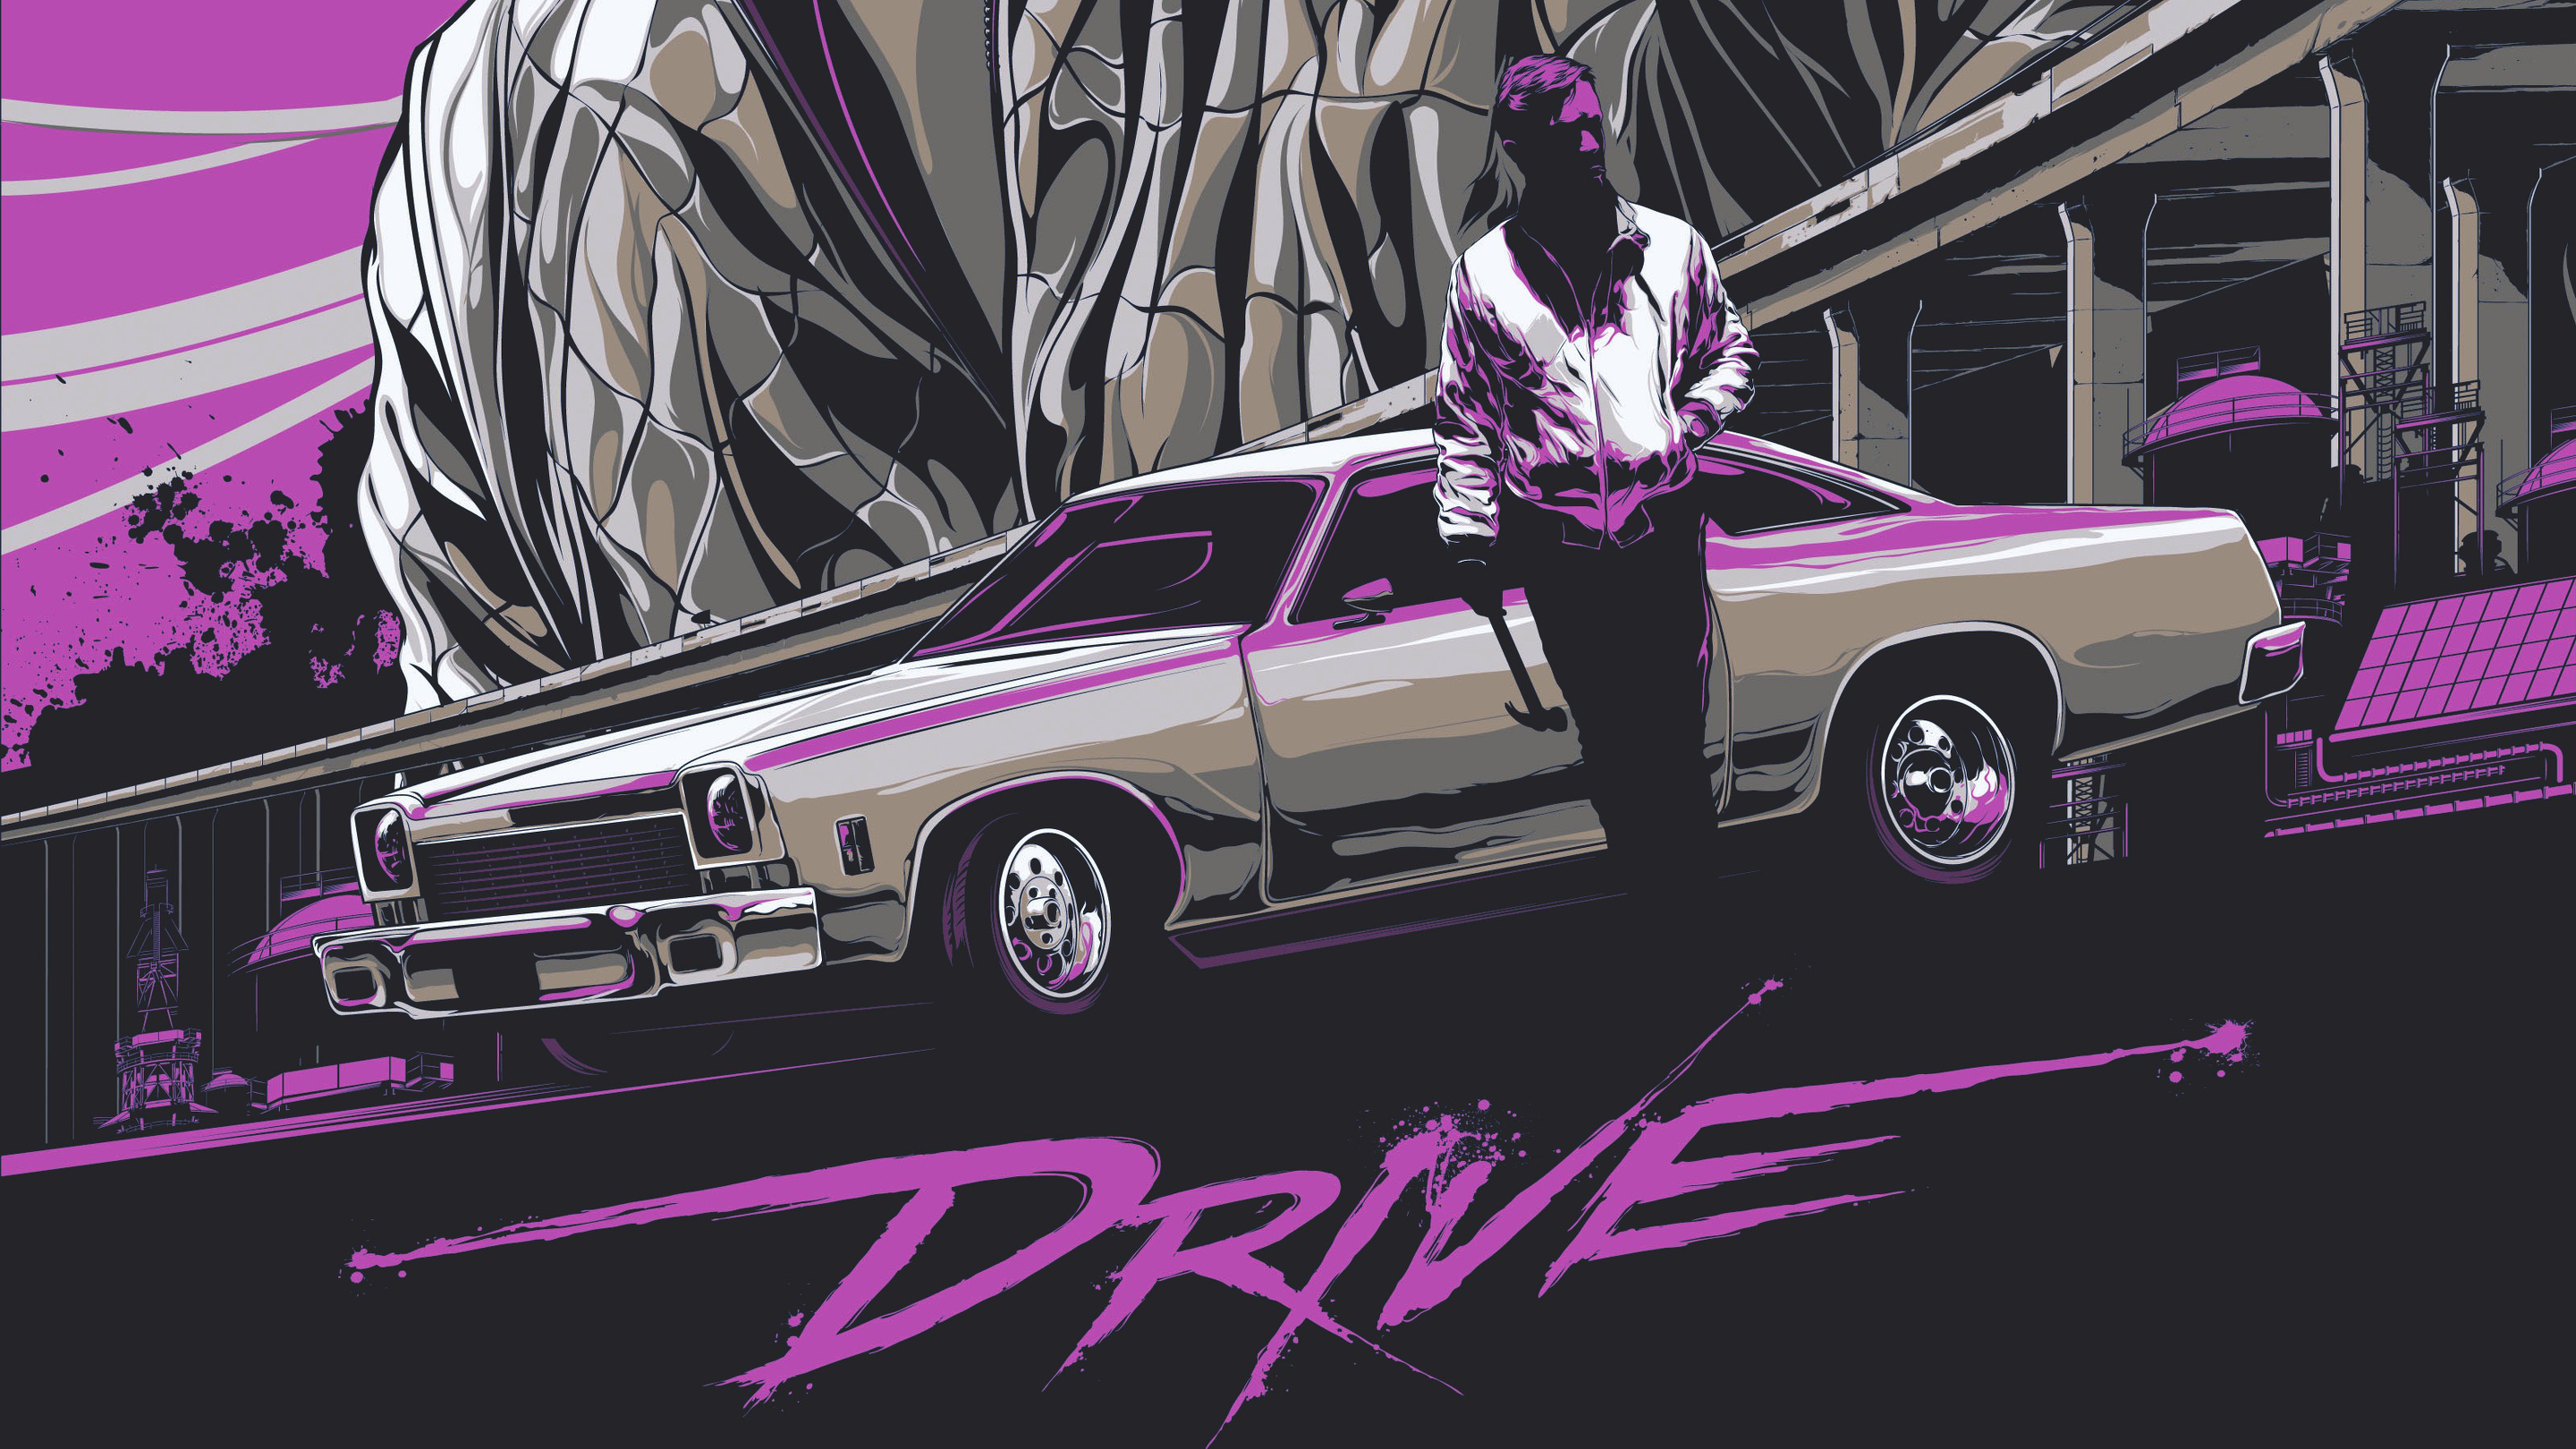 35 drive hd wallpapers background images wallpaper abyss voltagebd Choice Image